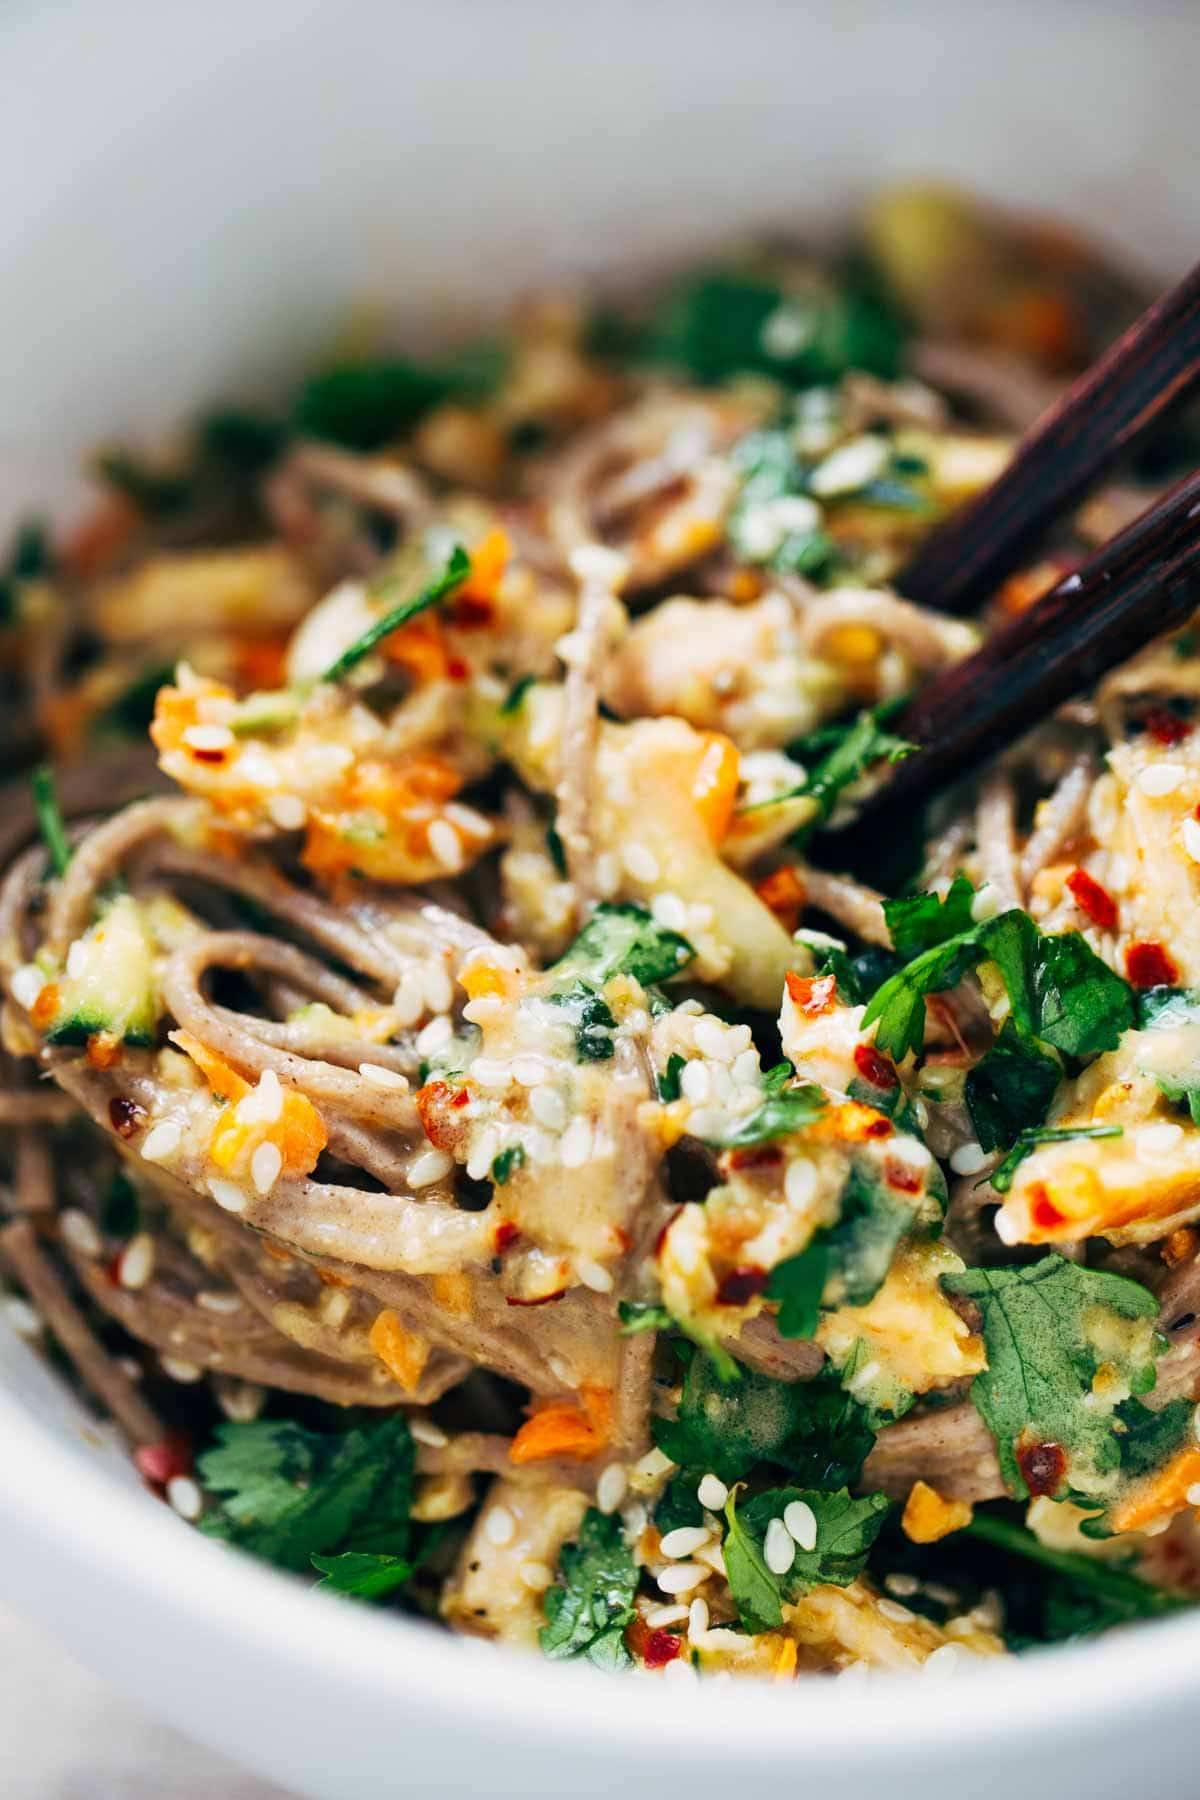 Chopped Chicken Sesame Noodle Bowls - loaded with veggies, chicken, cilantro, and a homemade sesame-peanut sauce. So good! | pinchofyum.com